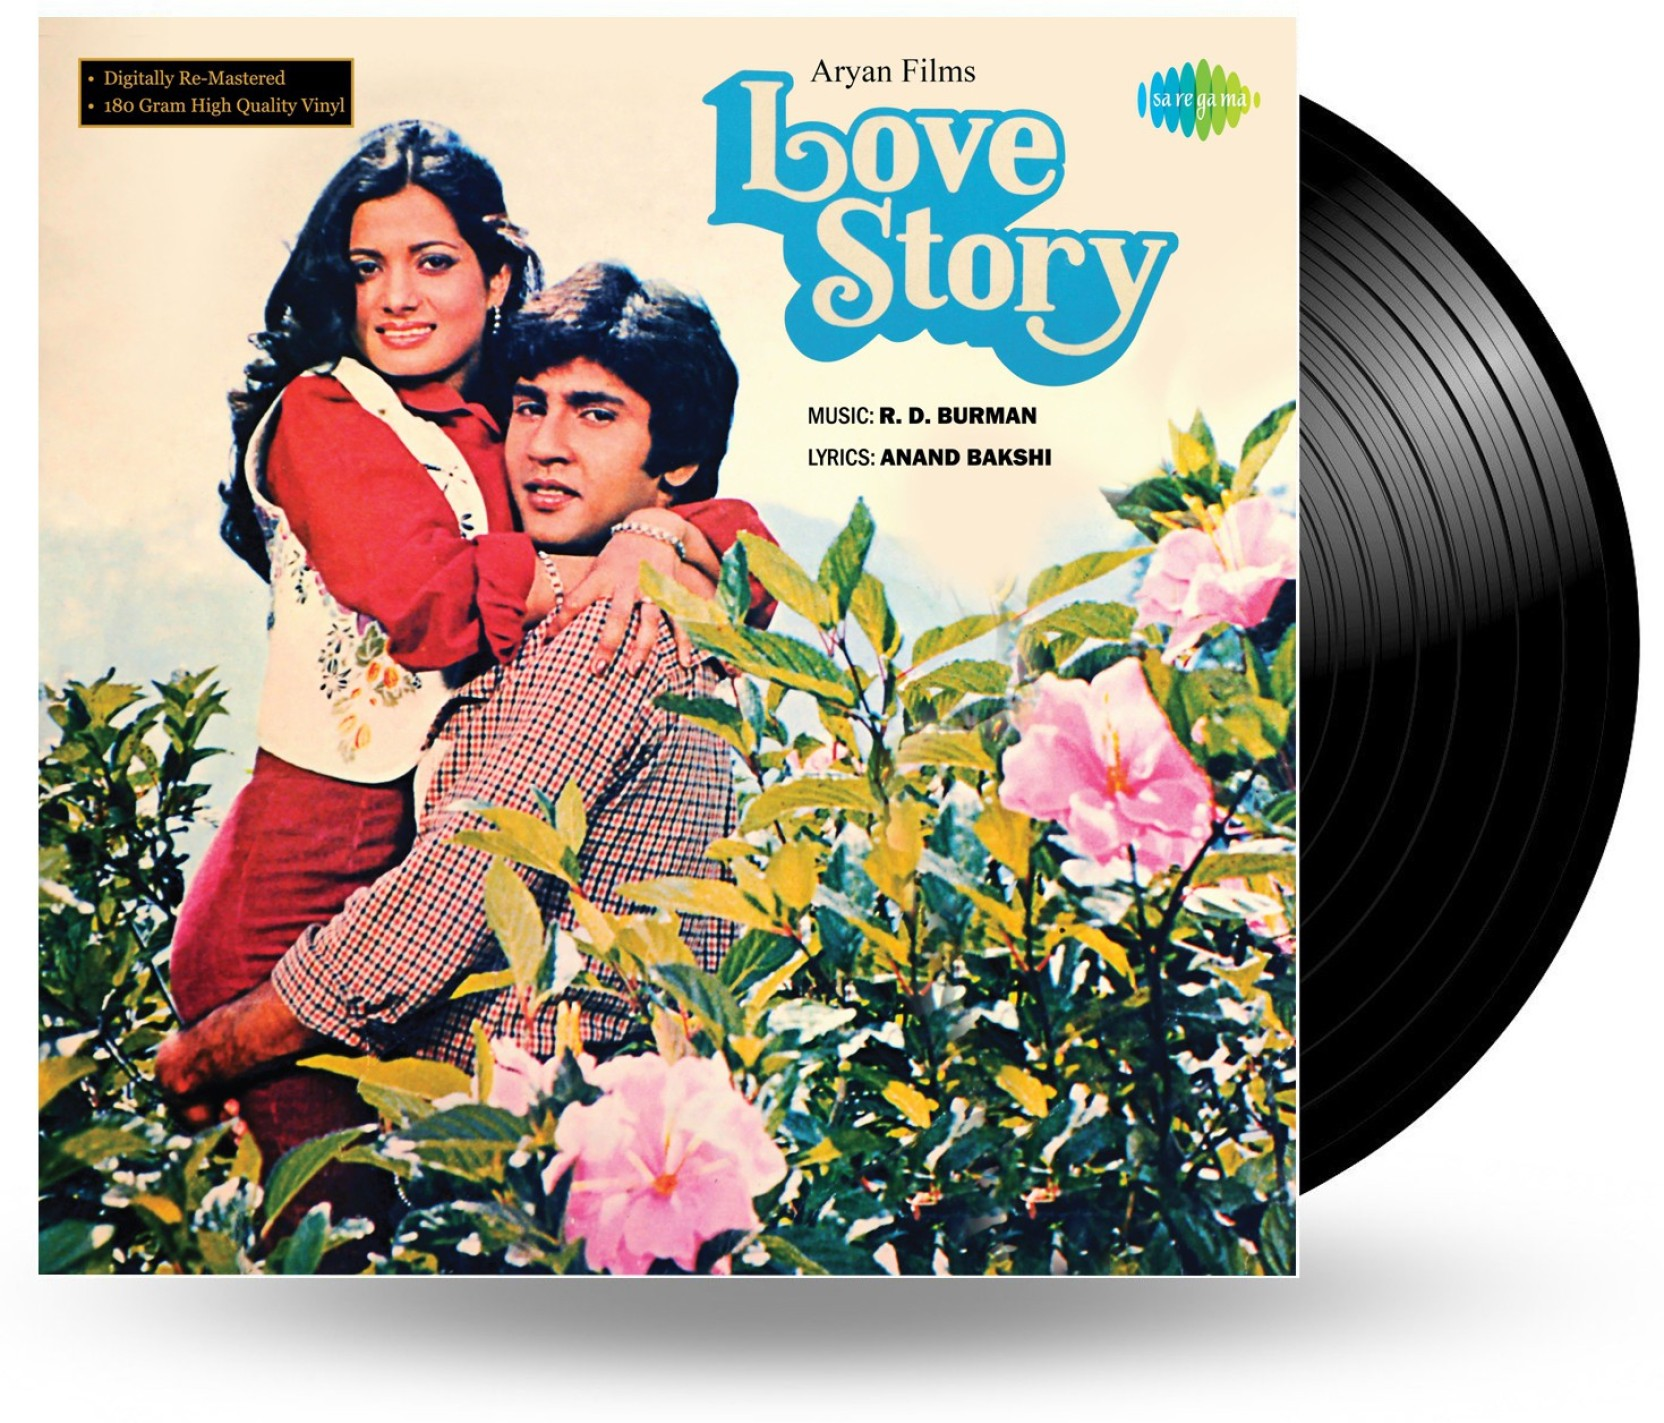 RECORD - LOVE STORY Vinyl Standard Edition Price in India - Buy